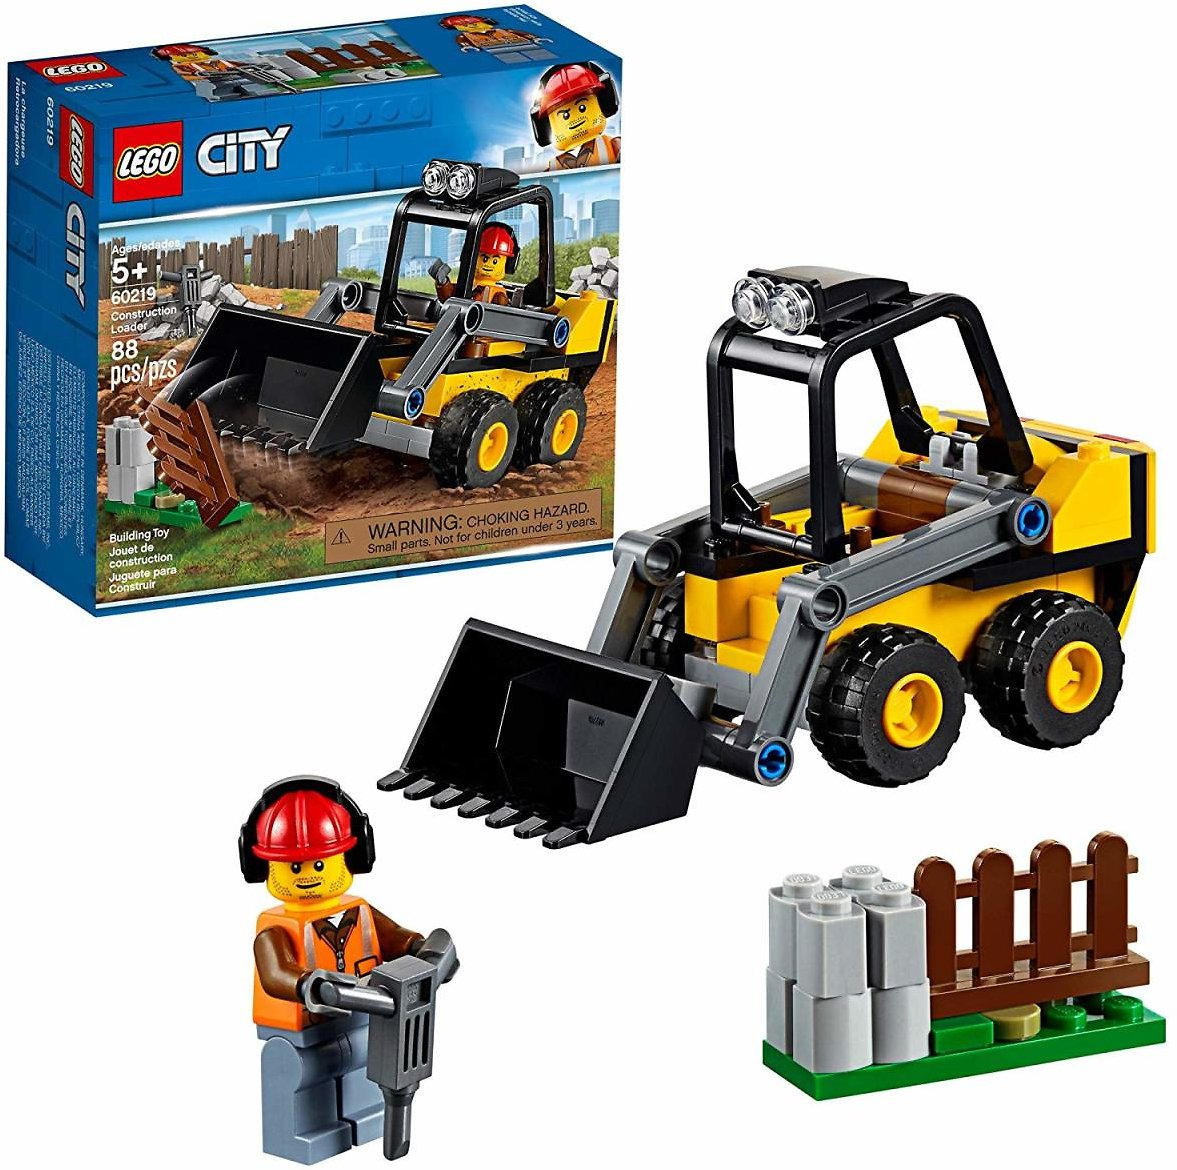 LEGO City Great Vehicles Construction Loader 60219 Building Kit (88 Piece)